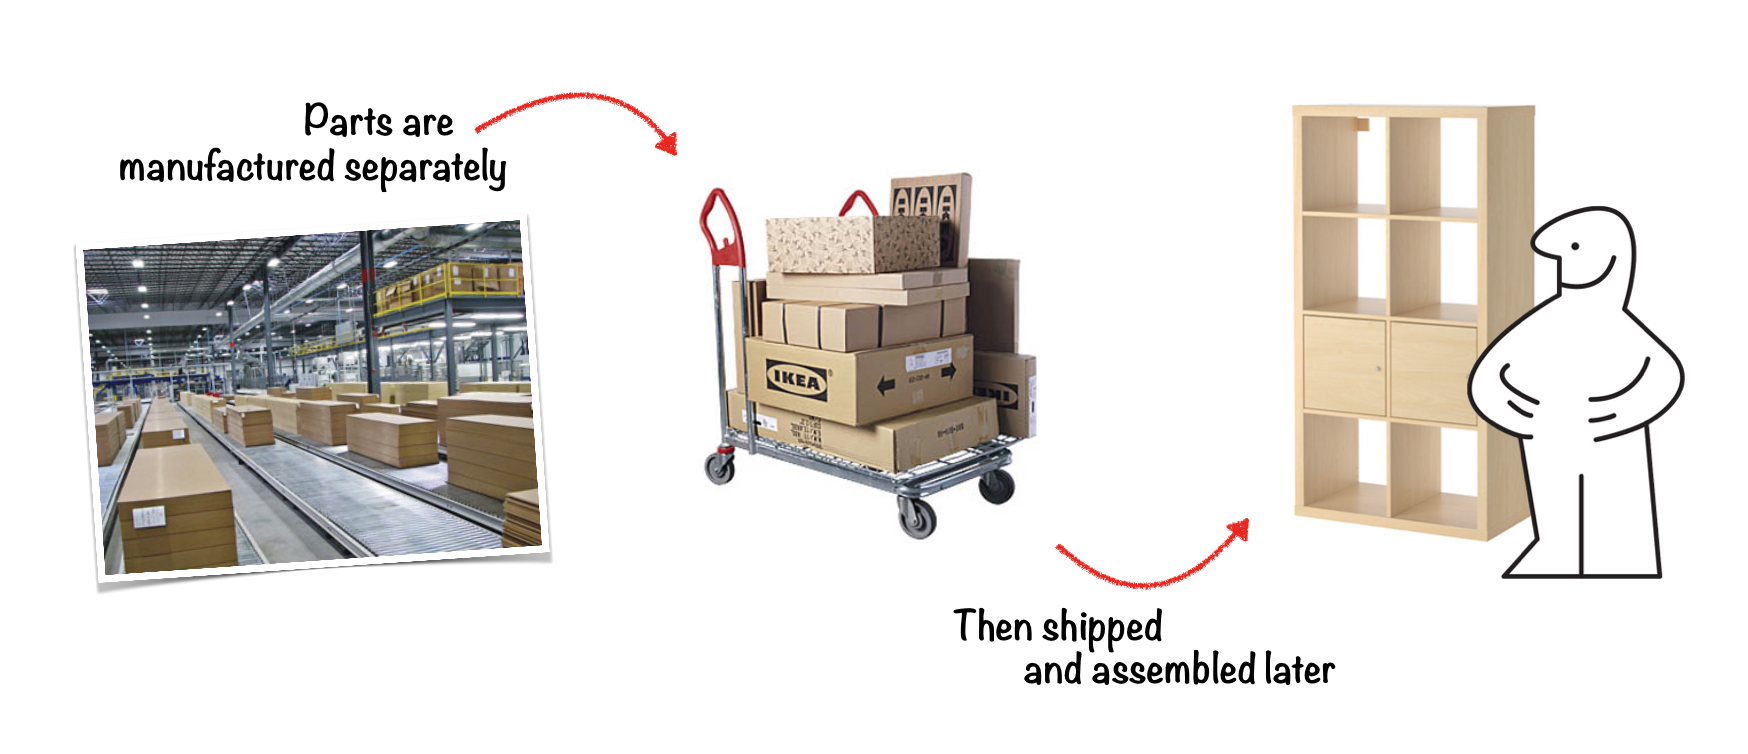 Manufacturing part separately allows to ship and sell them for a lower cost